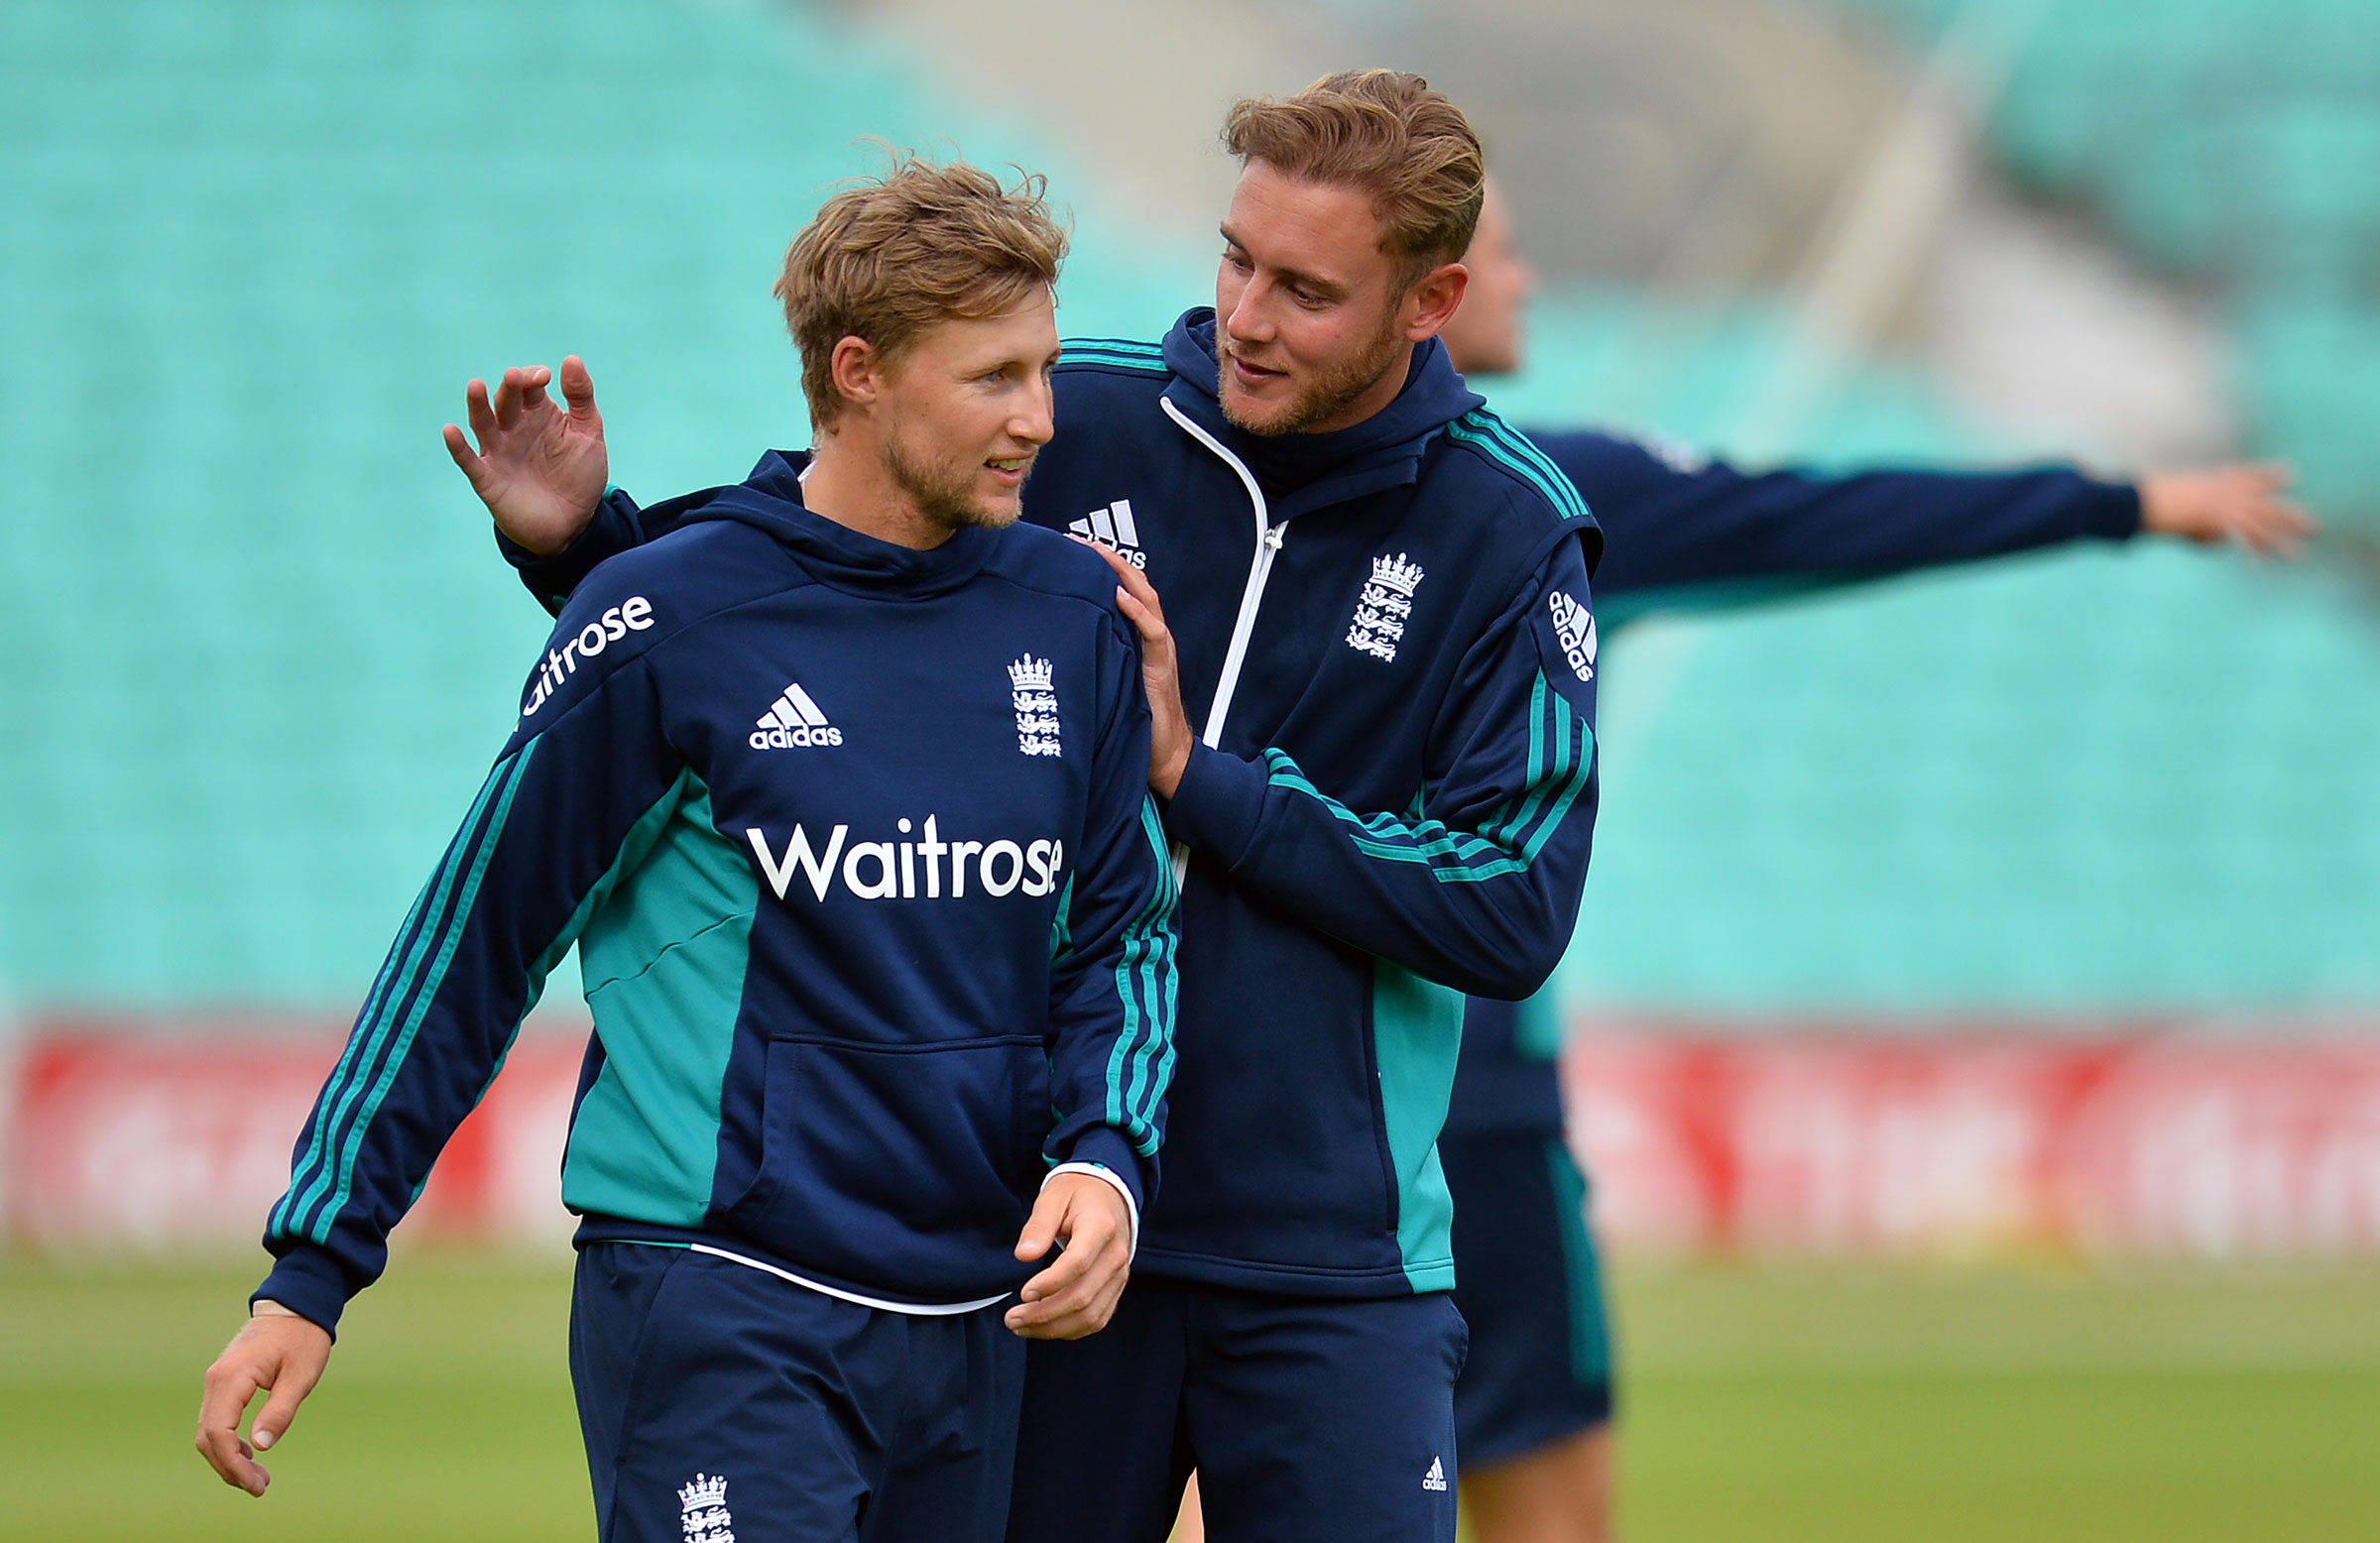 Joe Root named England Test cricket captain after Alastair Cook's resignation